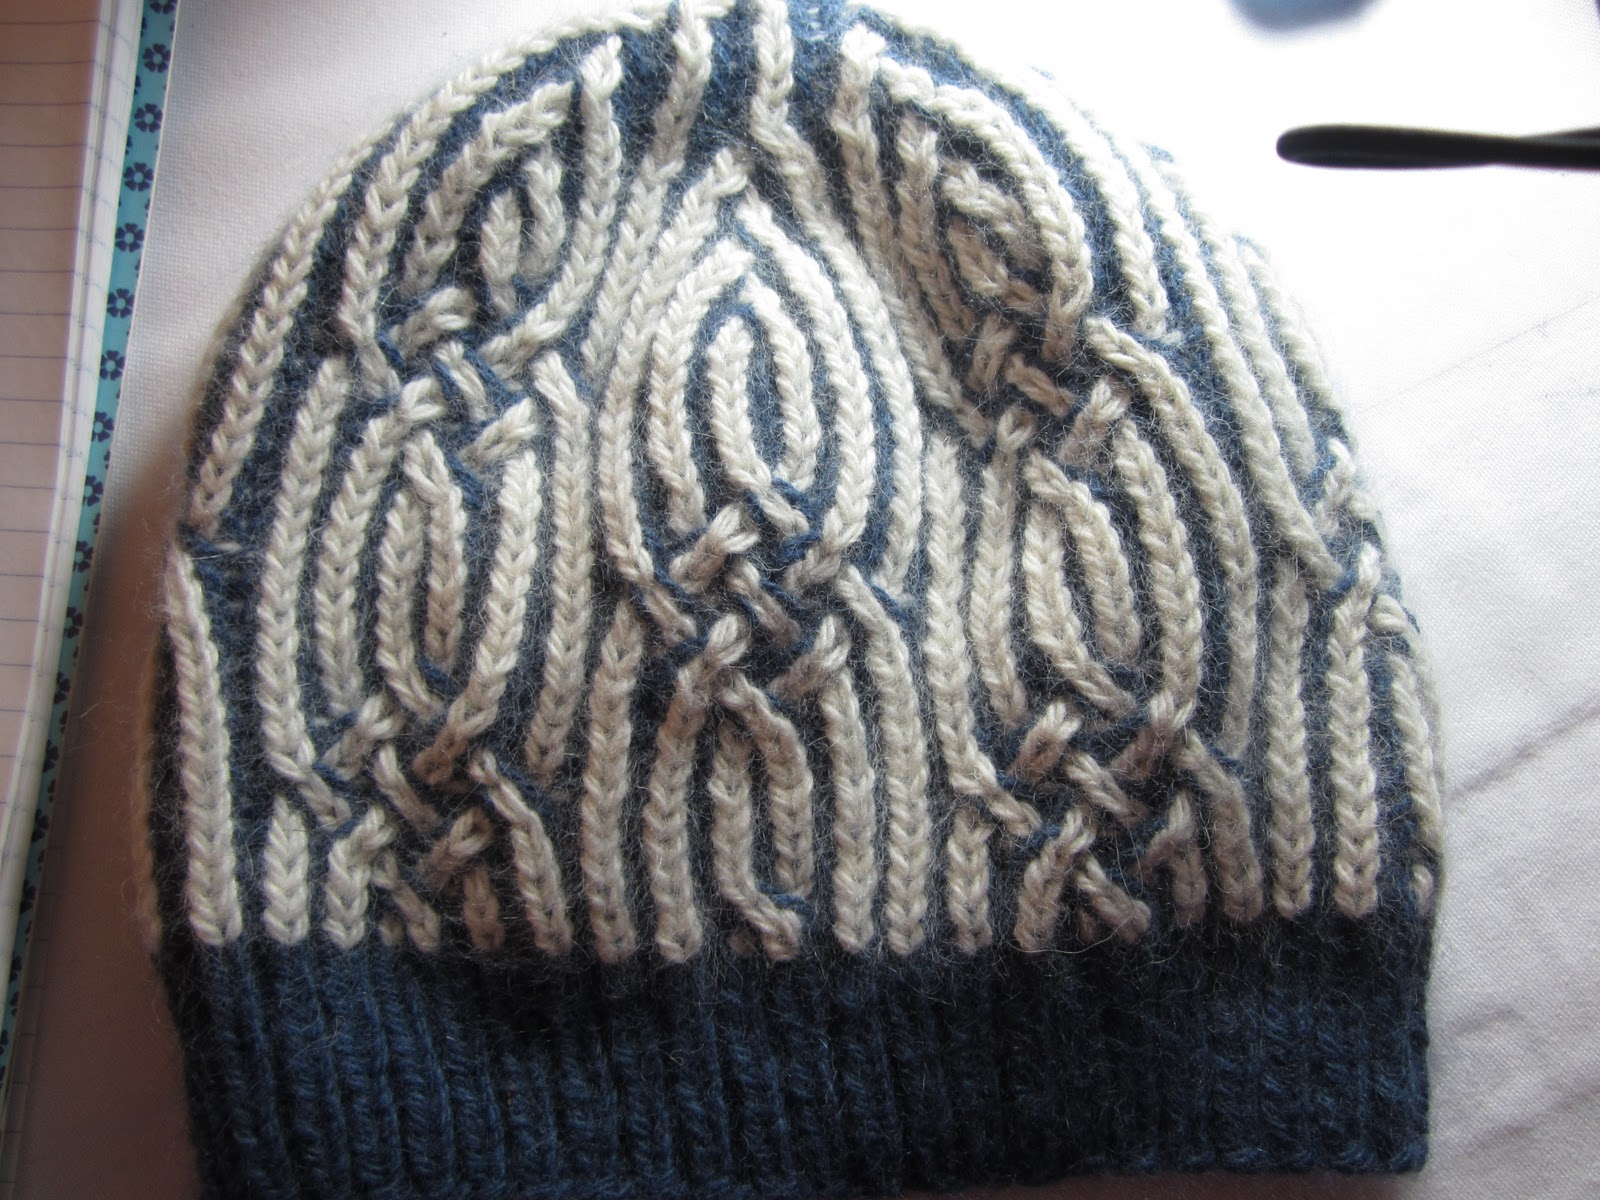 Knitting With Two Colors In The Round : Stitch and chat manipulating color brioche stitches